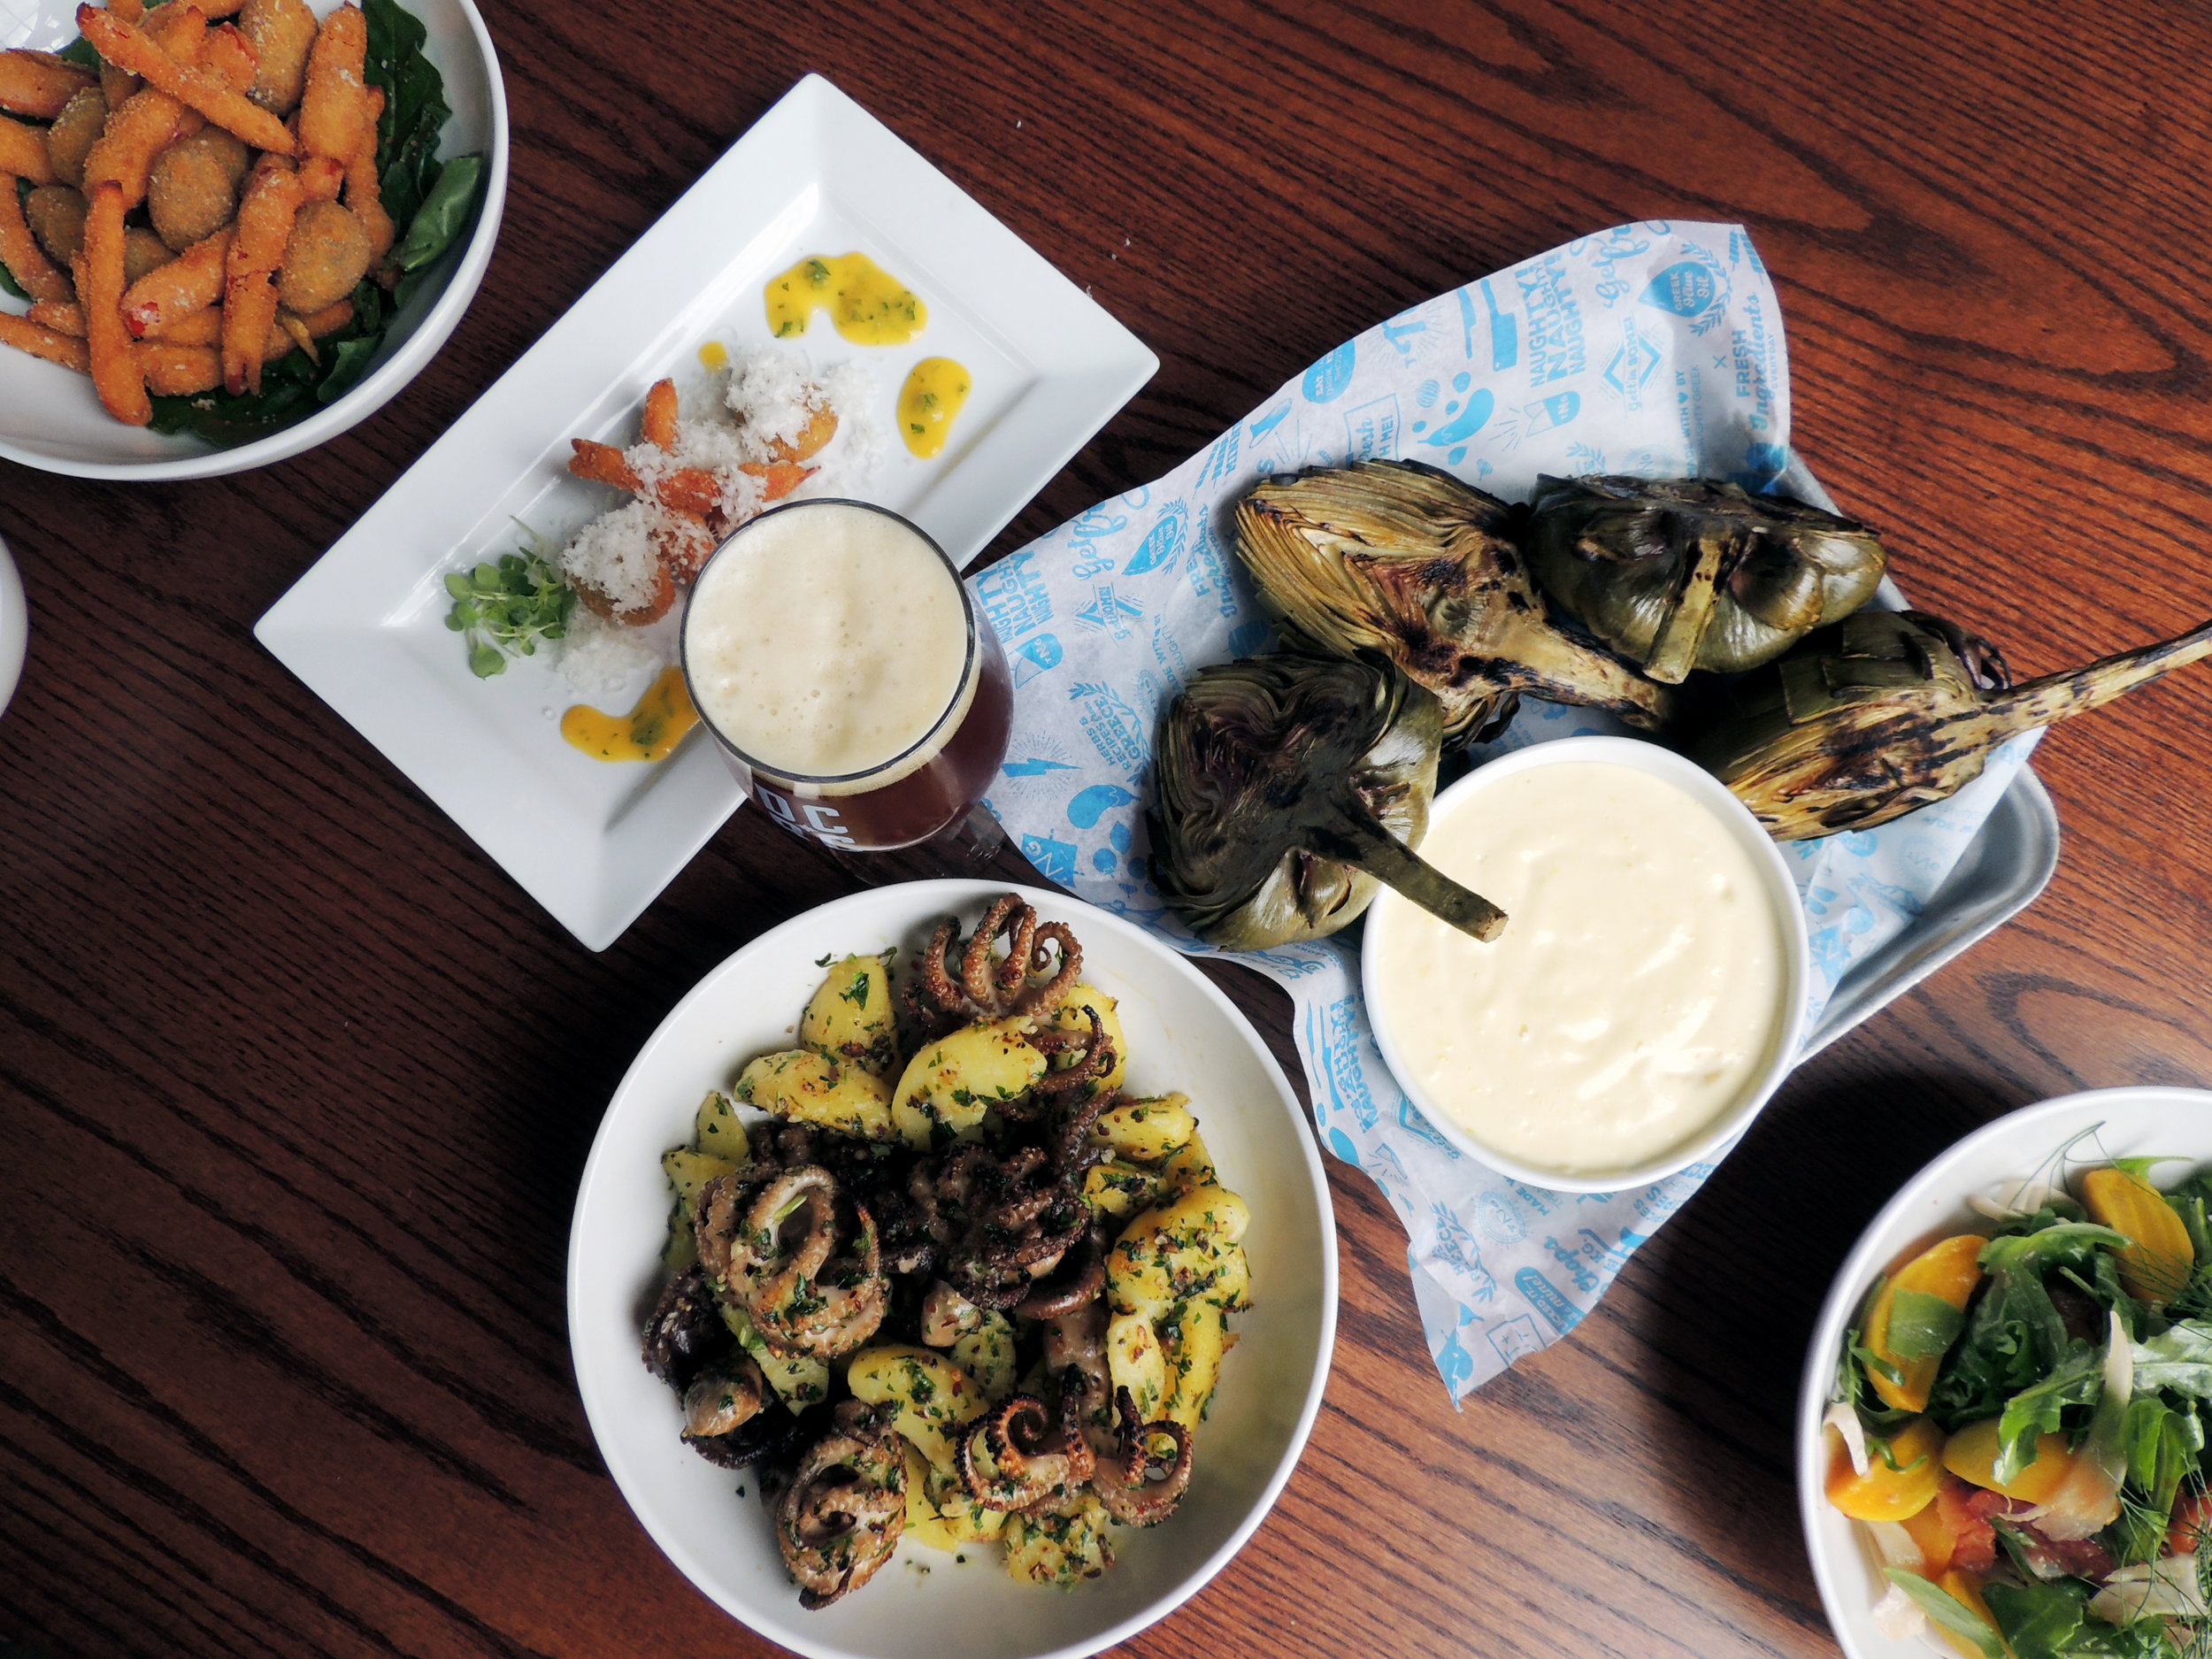 fried stuffed olives, fresno fries, virgin tomato sauce, amber ale, grilled artichokes with lemon aioli, fennel & beet salad, baby octopus with garlicky potatoes